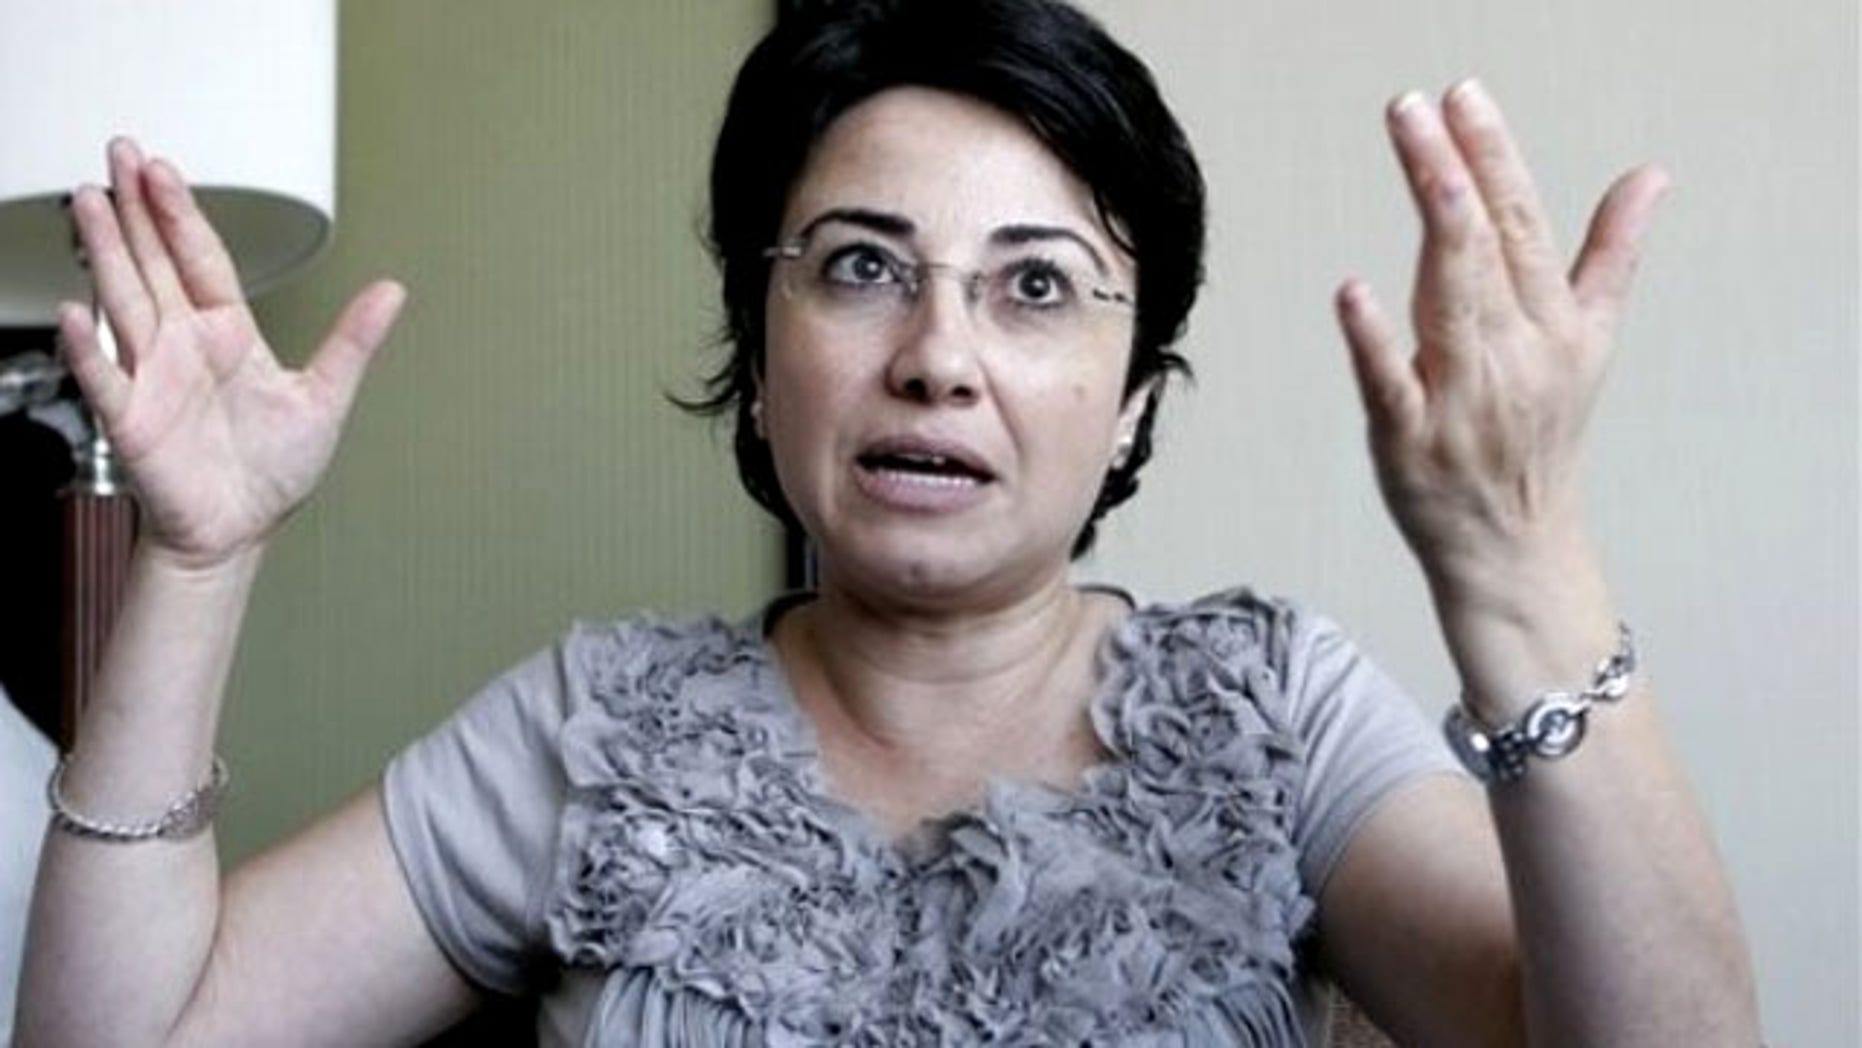 Israeli-Arab Knesset member Hanin Zoabi gestures as she talks to the media in Amman, Jordan, Tuesday, Aug. 31, 2010, after being interviewed by investigators from a U.N. human rights inquiry on the May 31 flotilla attack.